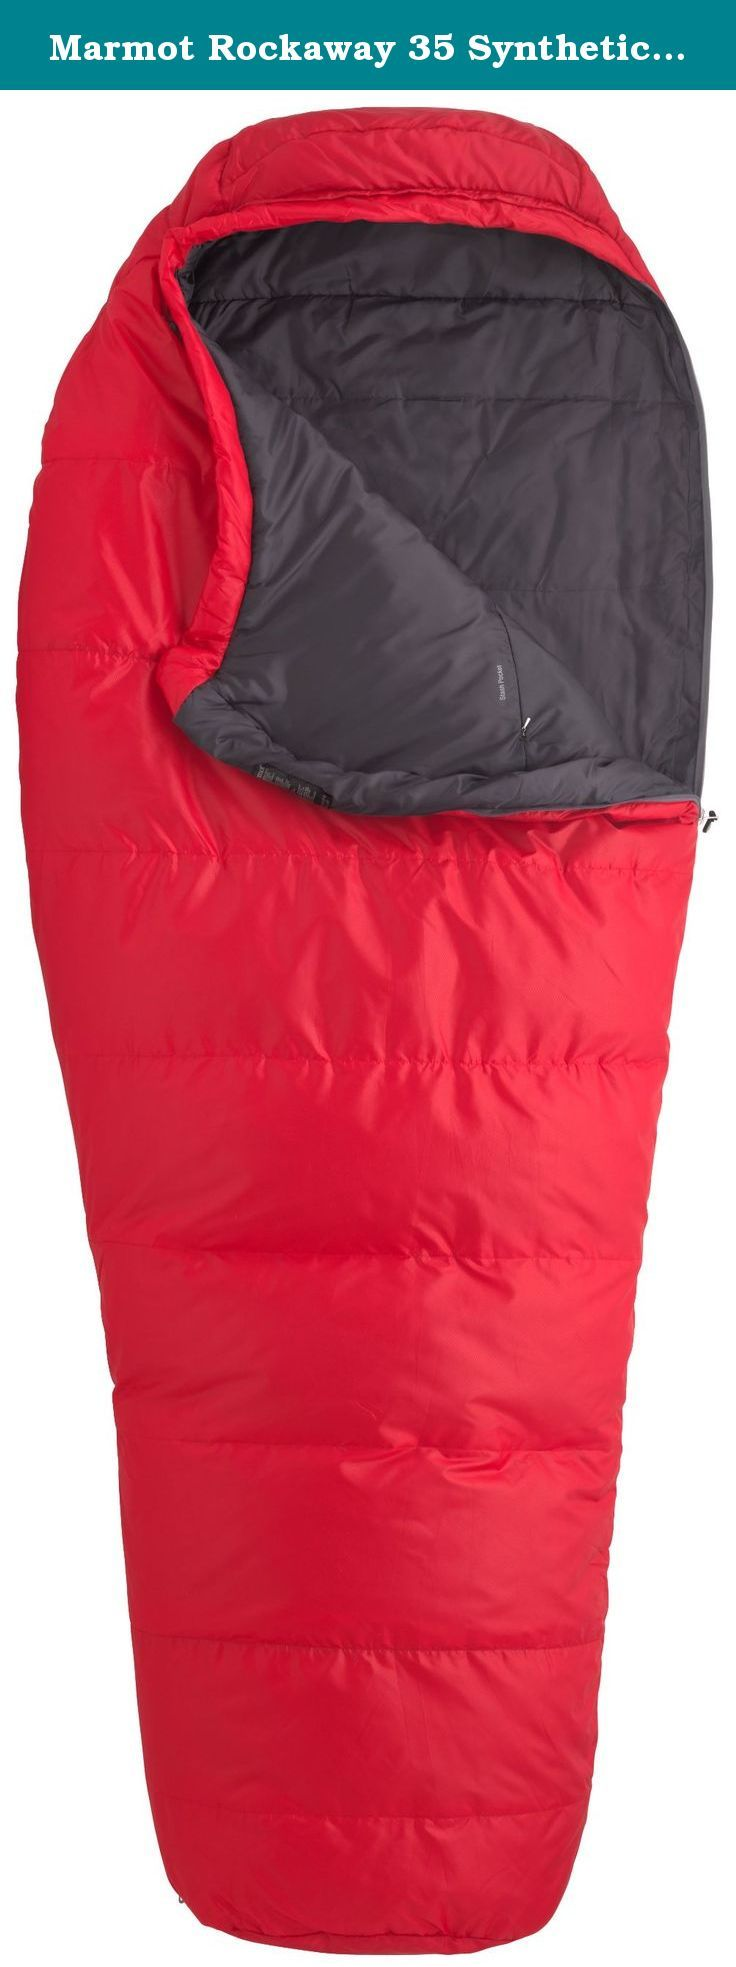 "Marmot Rockaway 35 Synthetic Sleeping Bag, Regular-Left, Red. Based on our popular Trestles Series, the Rockaway 35 has a wider build for those who require a roomier sleeping bag. We've added 5"" at the shoulder, waist and foot without sacrificing ergonomic style lines. SpiraFil High Loft Insulation with Shingle insulation construction keeps you warm to freezing temps."